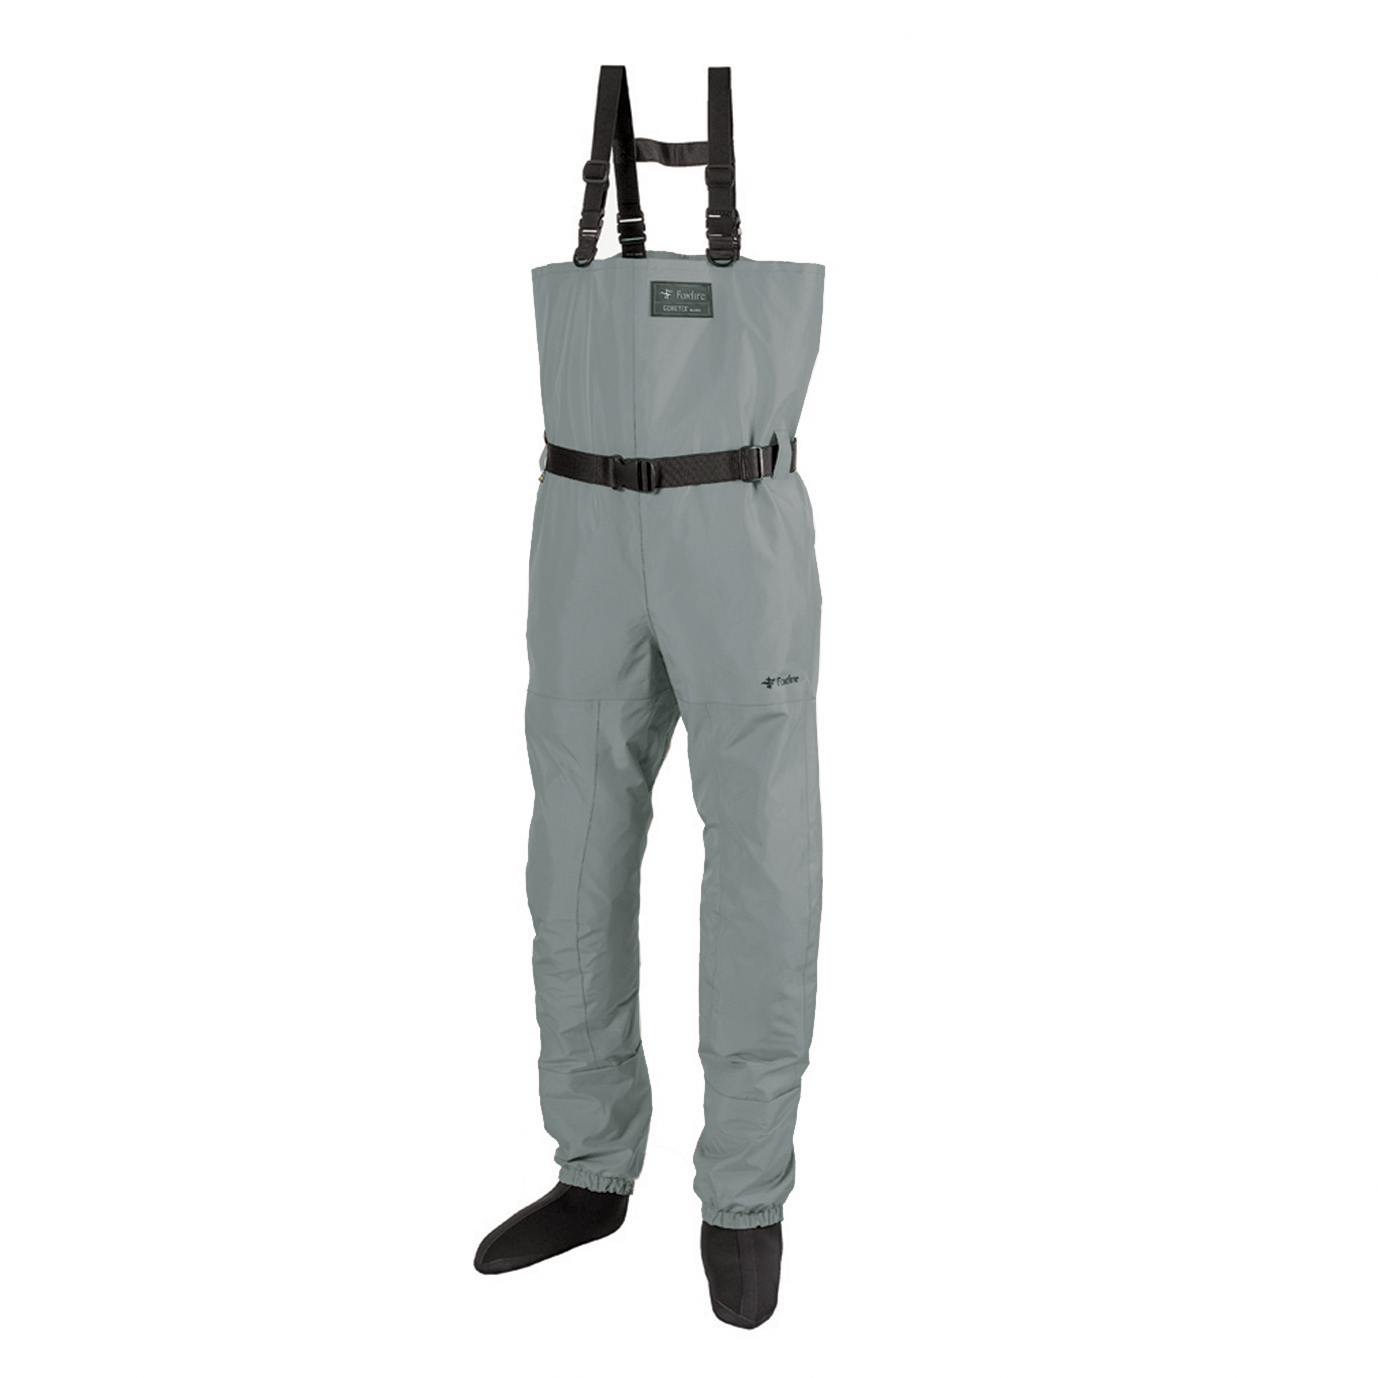 TR Vertical Two-seam Waders